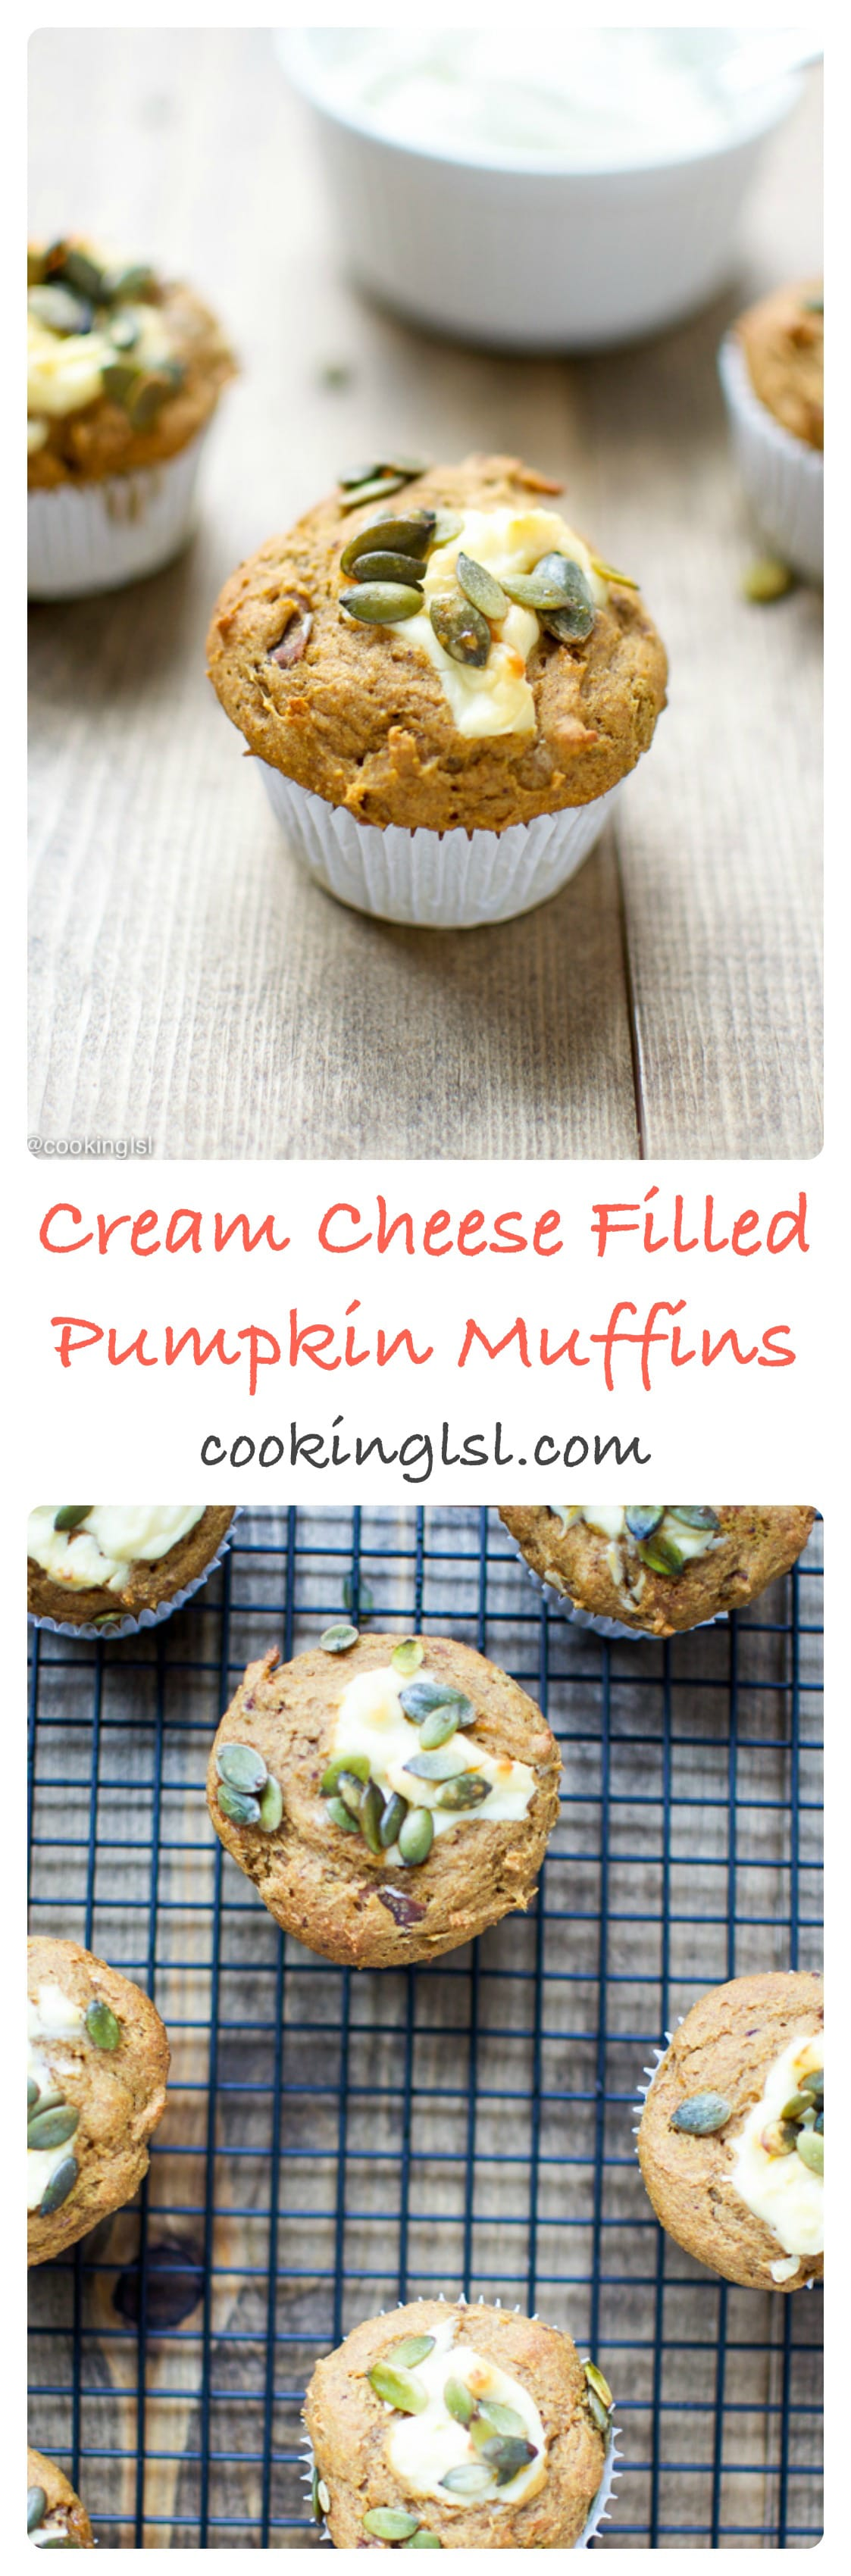 Cream-cheese-filled-pumpkin-muffins-naturally-sweetened